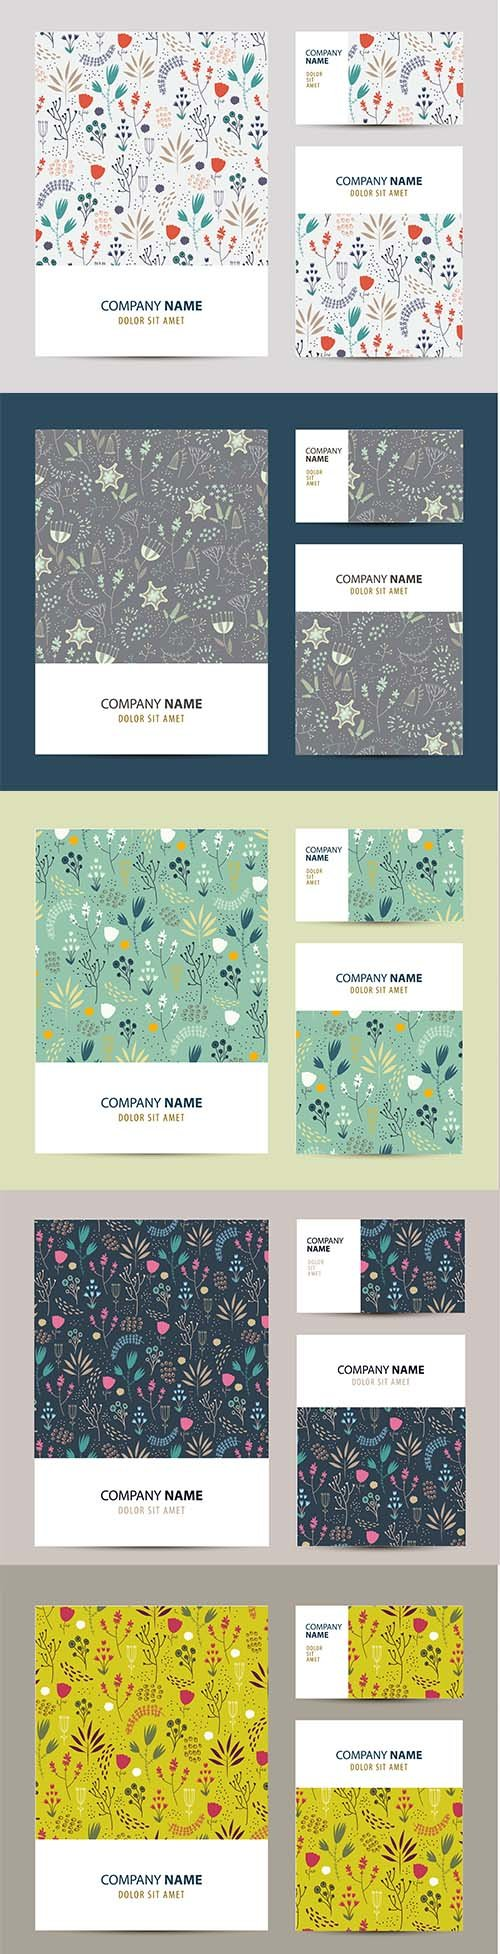 Business set template with hand-drawn flower pattern